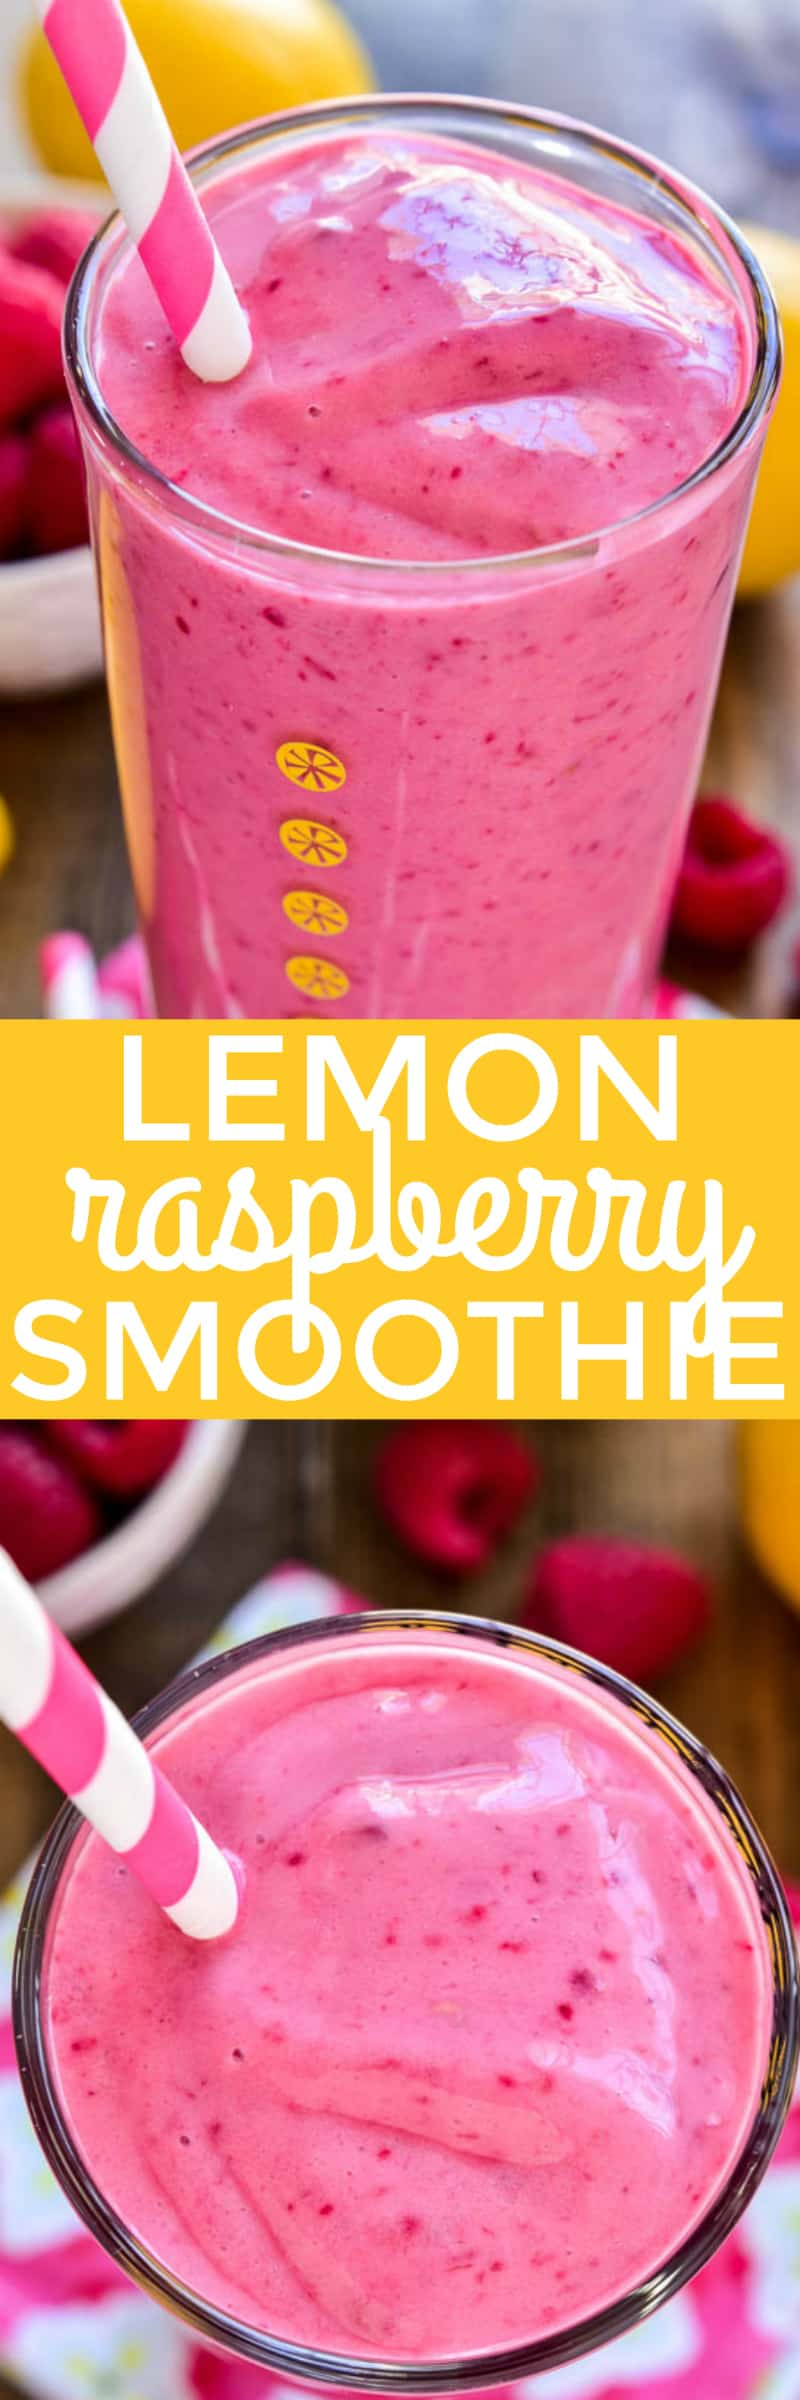 This Lemon Raspberry Smoothie is the ultimate taste of spring! It combines the delicious flavors of raspberry and lemon in an easy smoothie recipe that's perfect for breakfast, snack, or even a lighter dessert.